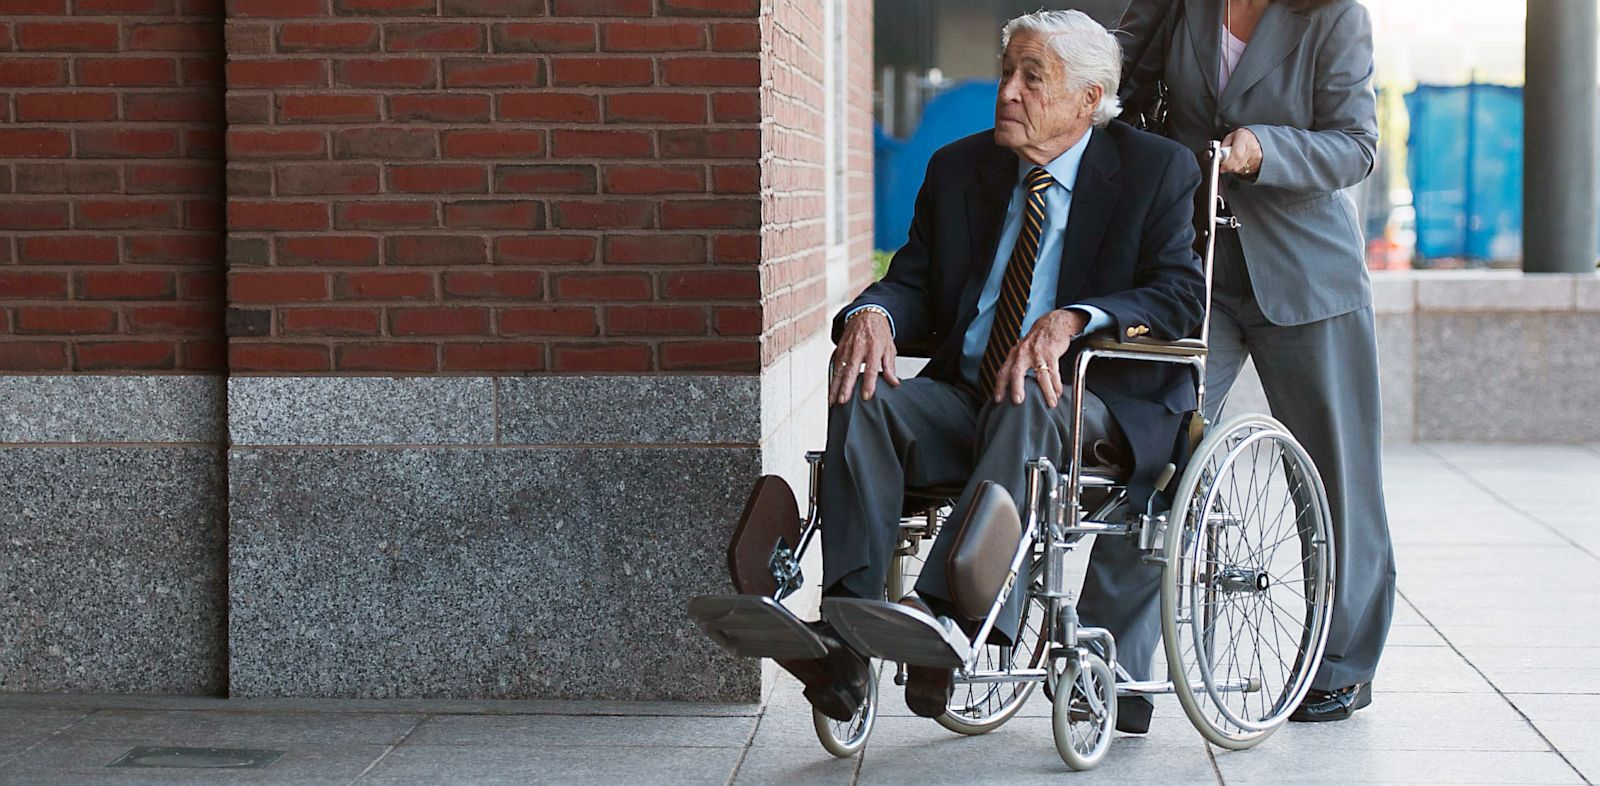 PHOTO: Dick OBrien enters court in wheelchair for trial of Whitey Bulger